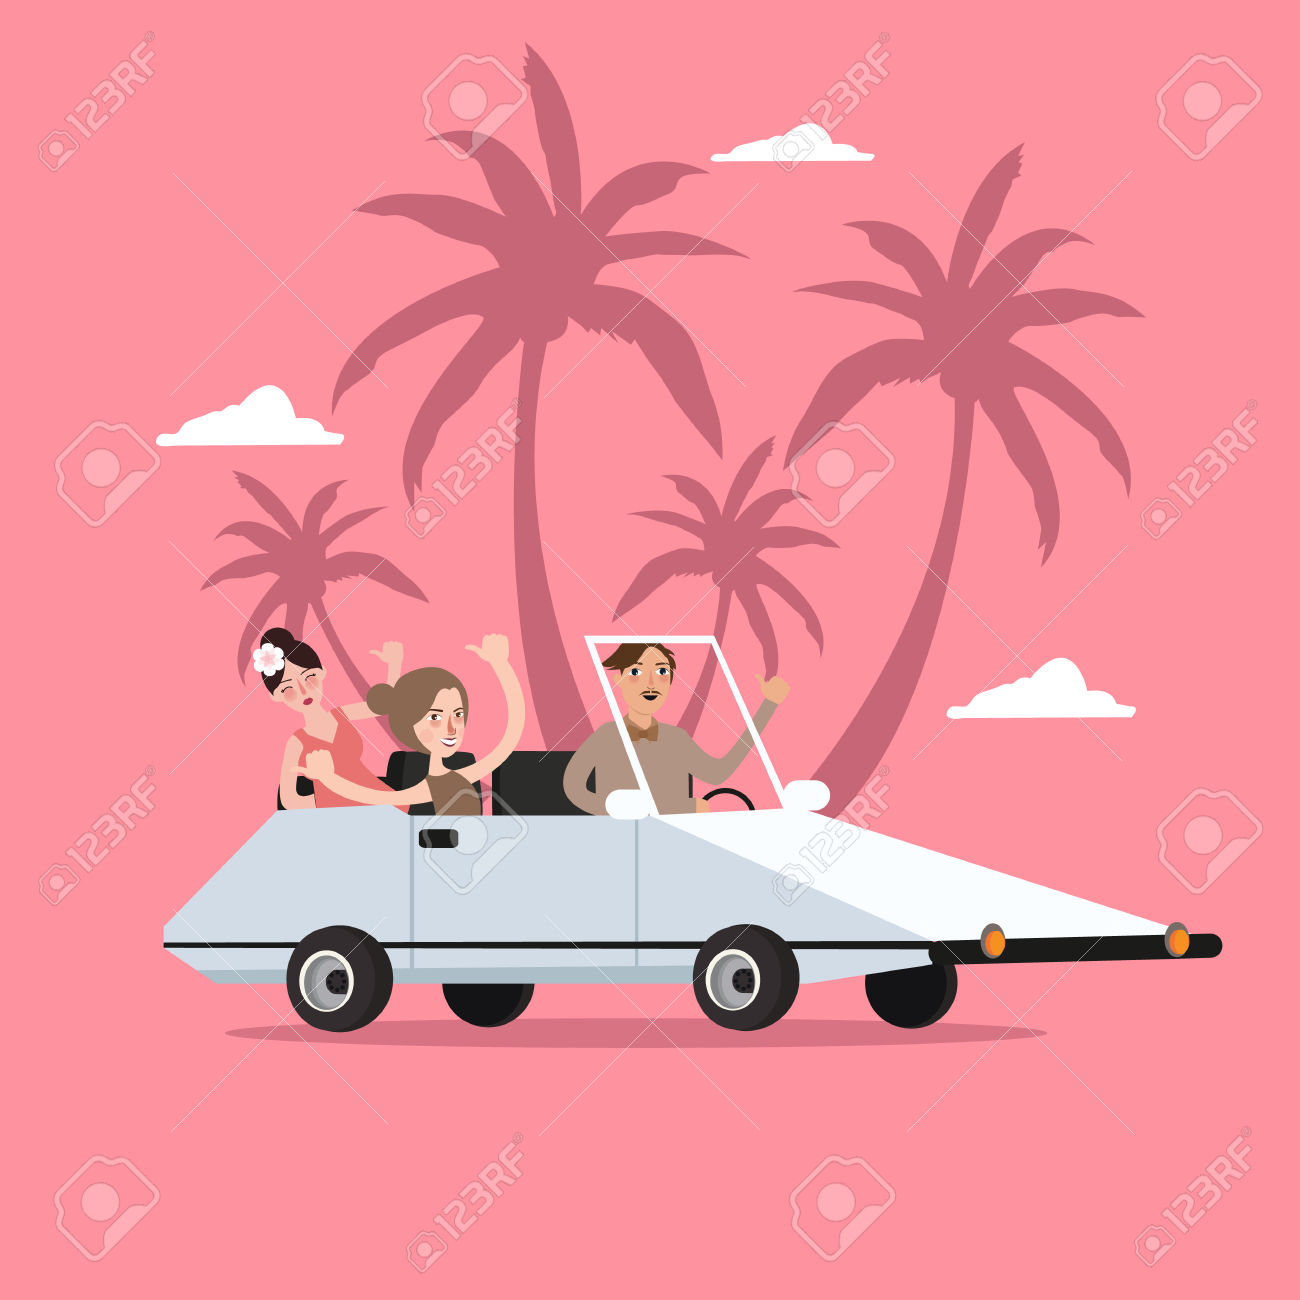 Group Of People Ride Car Open For Travel Holiday With Palm Tree.